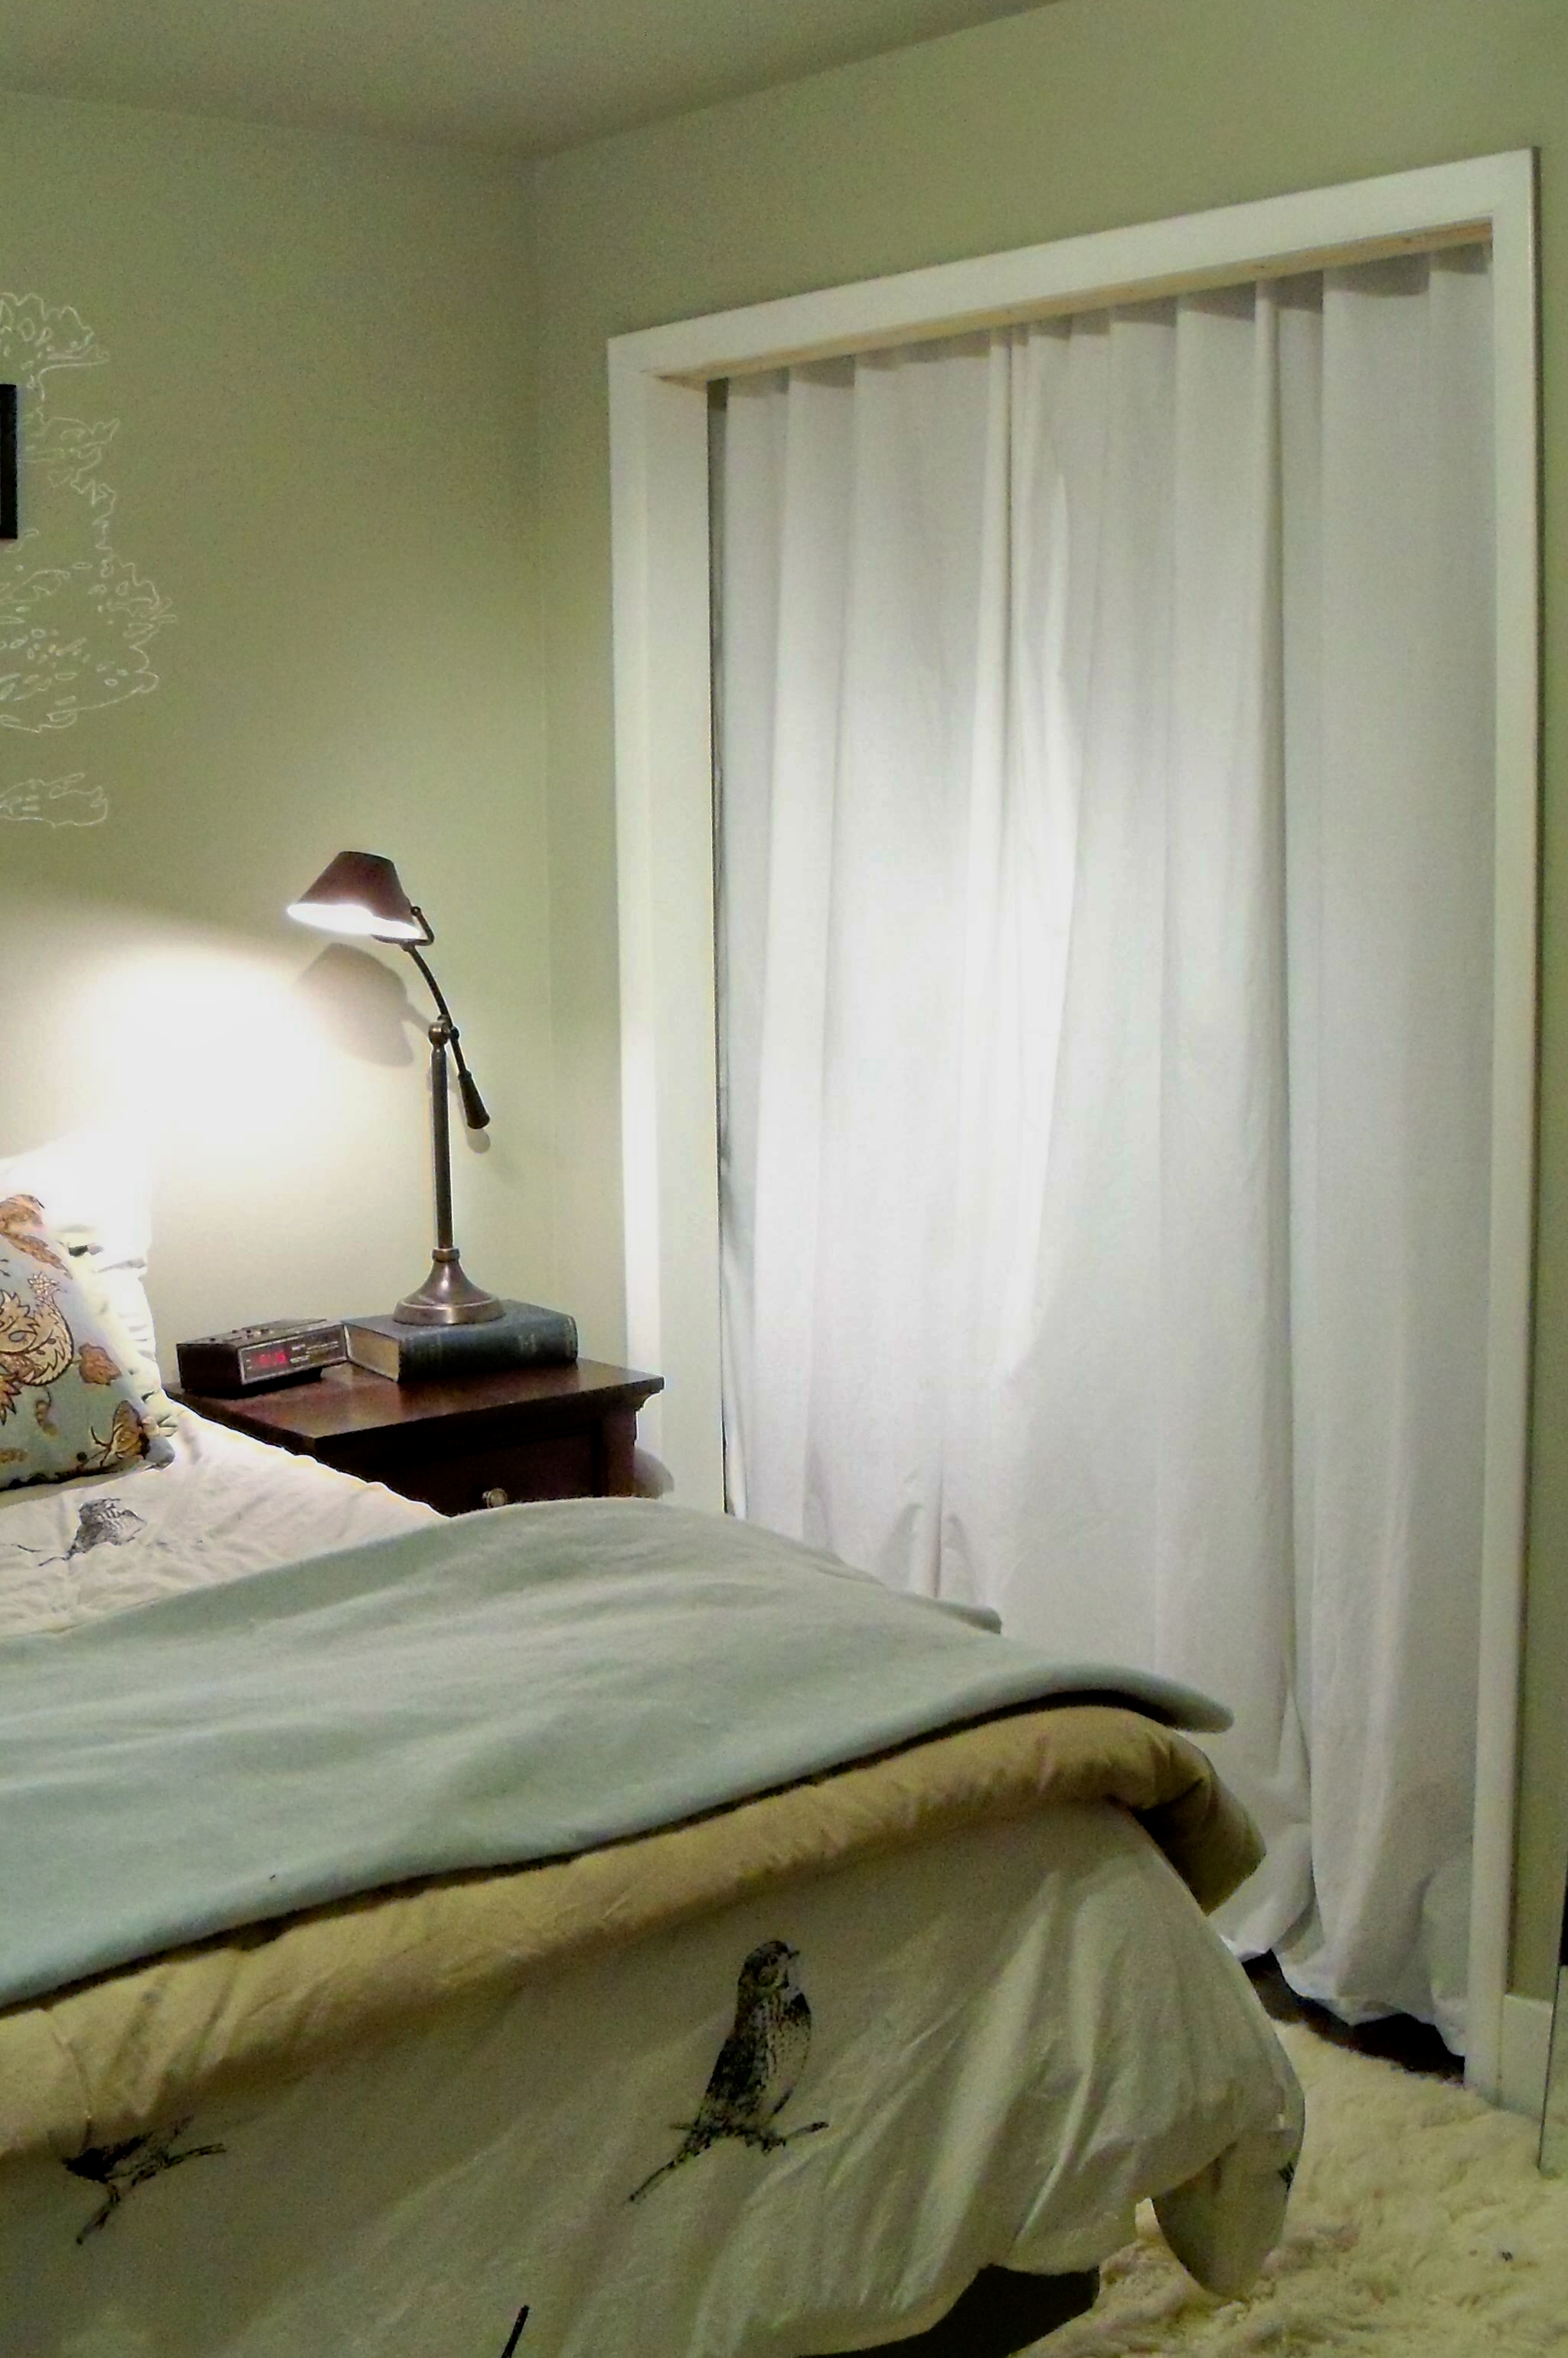 Closet Curtain Down With Closet Doors Up With Curtains A Home West